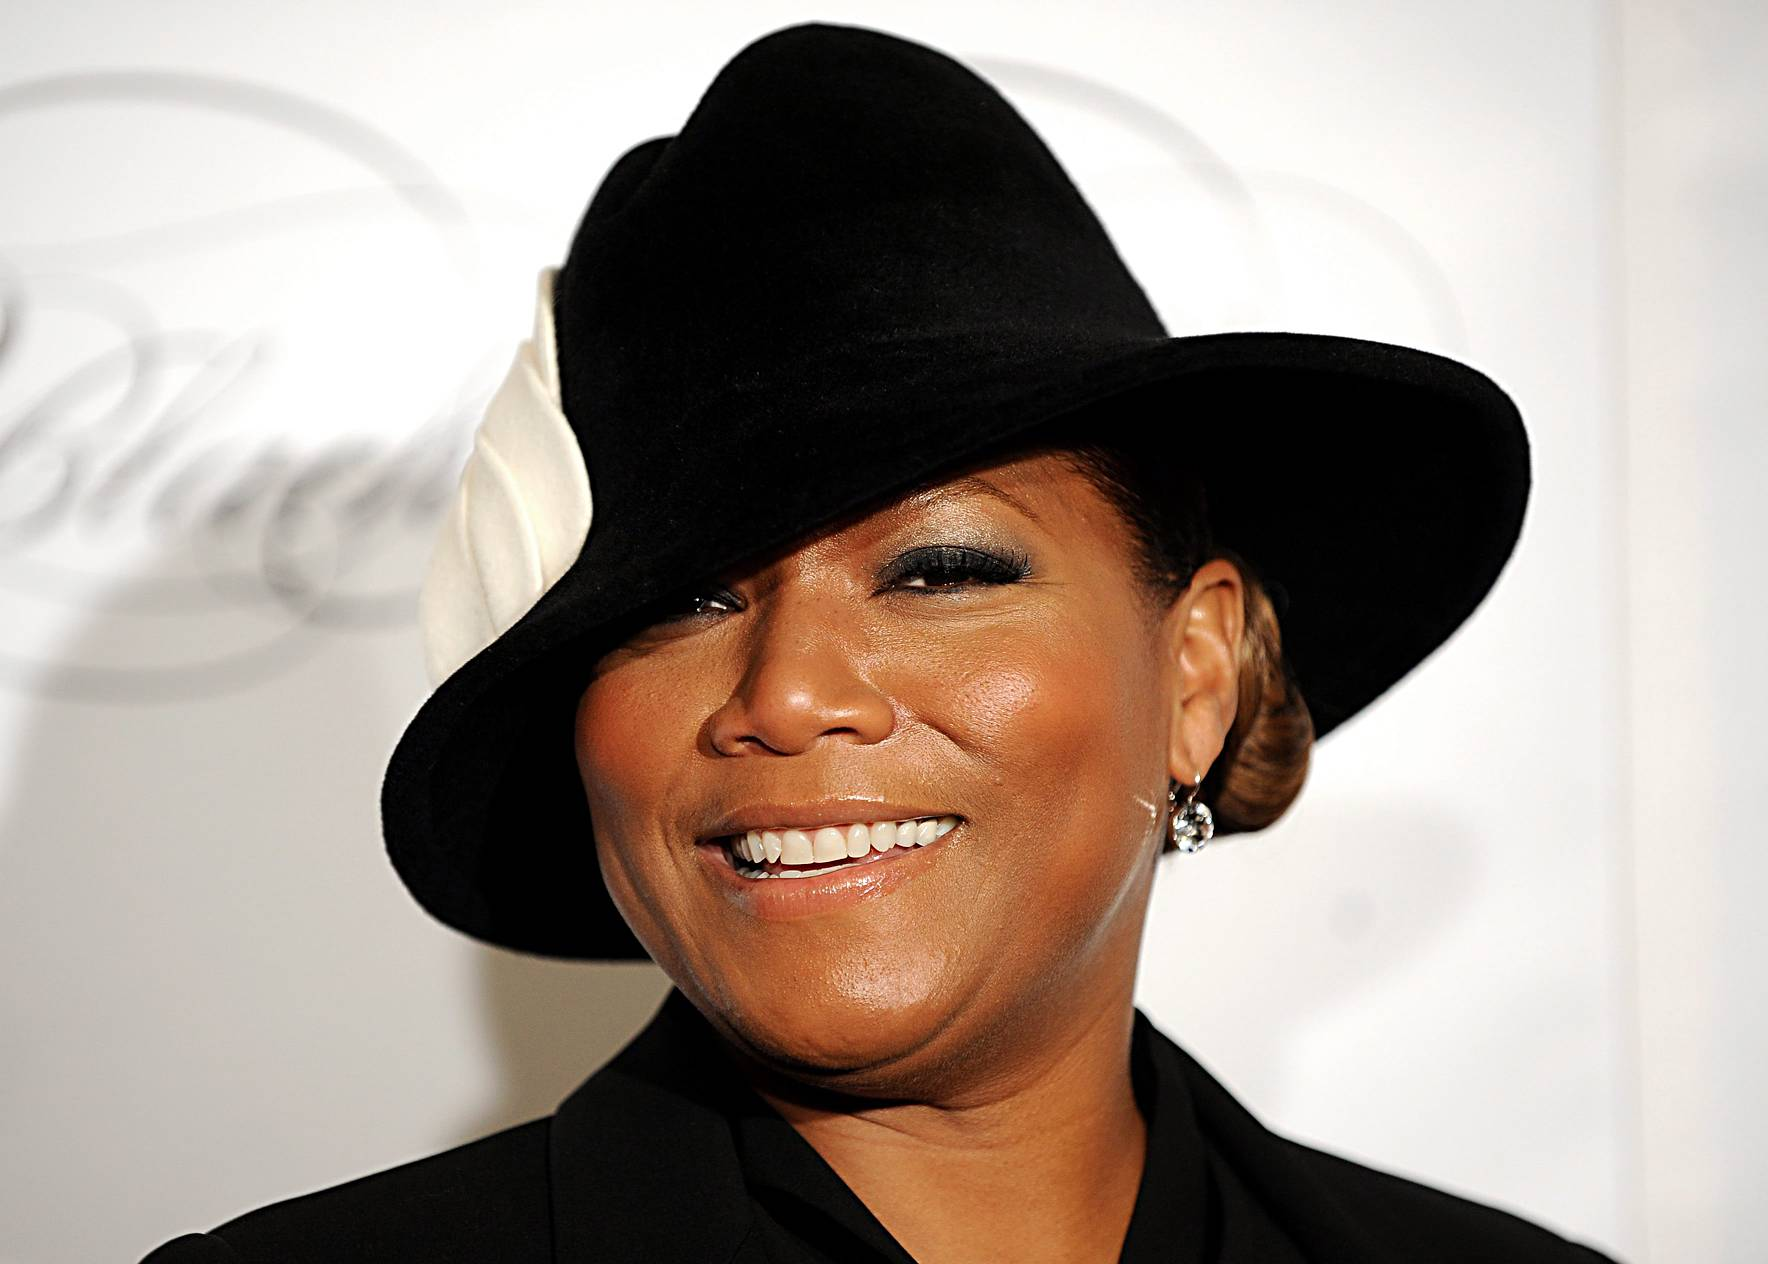 All Hail the Queen! - All hail the Queen! Rapper-actor-model-entrepreneur Queen Latifah, who turns 43 on March 18. Looking back at her superstar successes, we're sure Latifah is proud. But the her journey to the top of the game wasn't a short one. Click on to see how the Queen got her crown.(Photo: EPA/JUSTIN LANE/Landov)